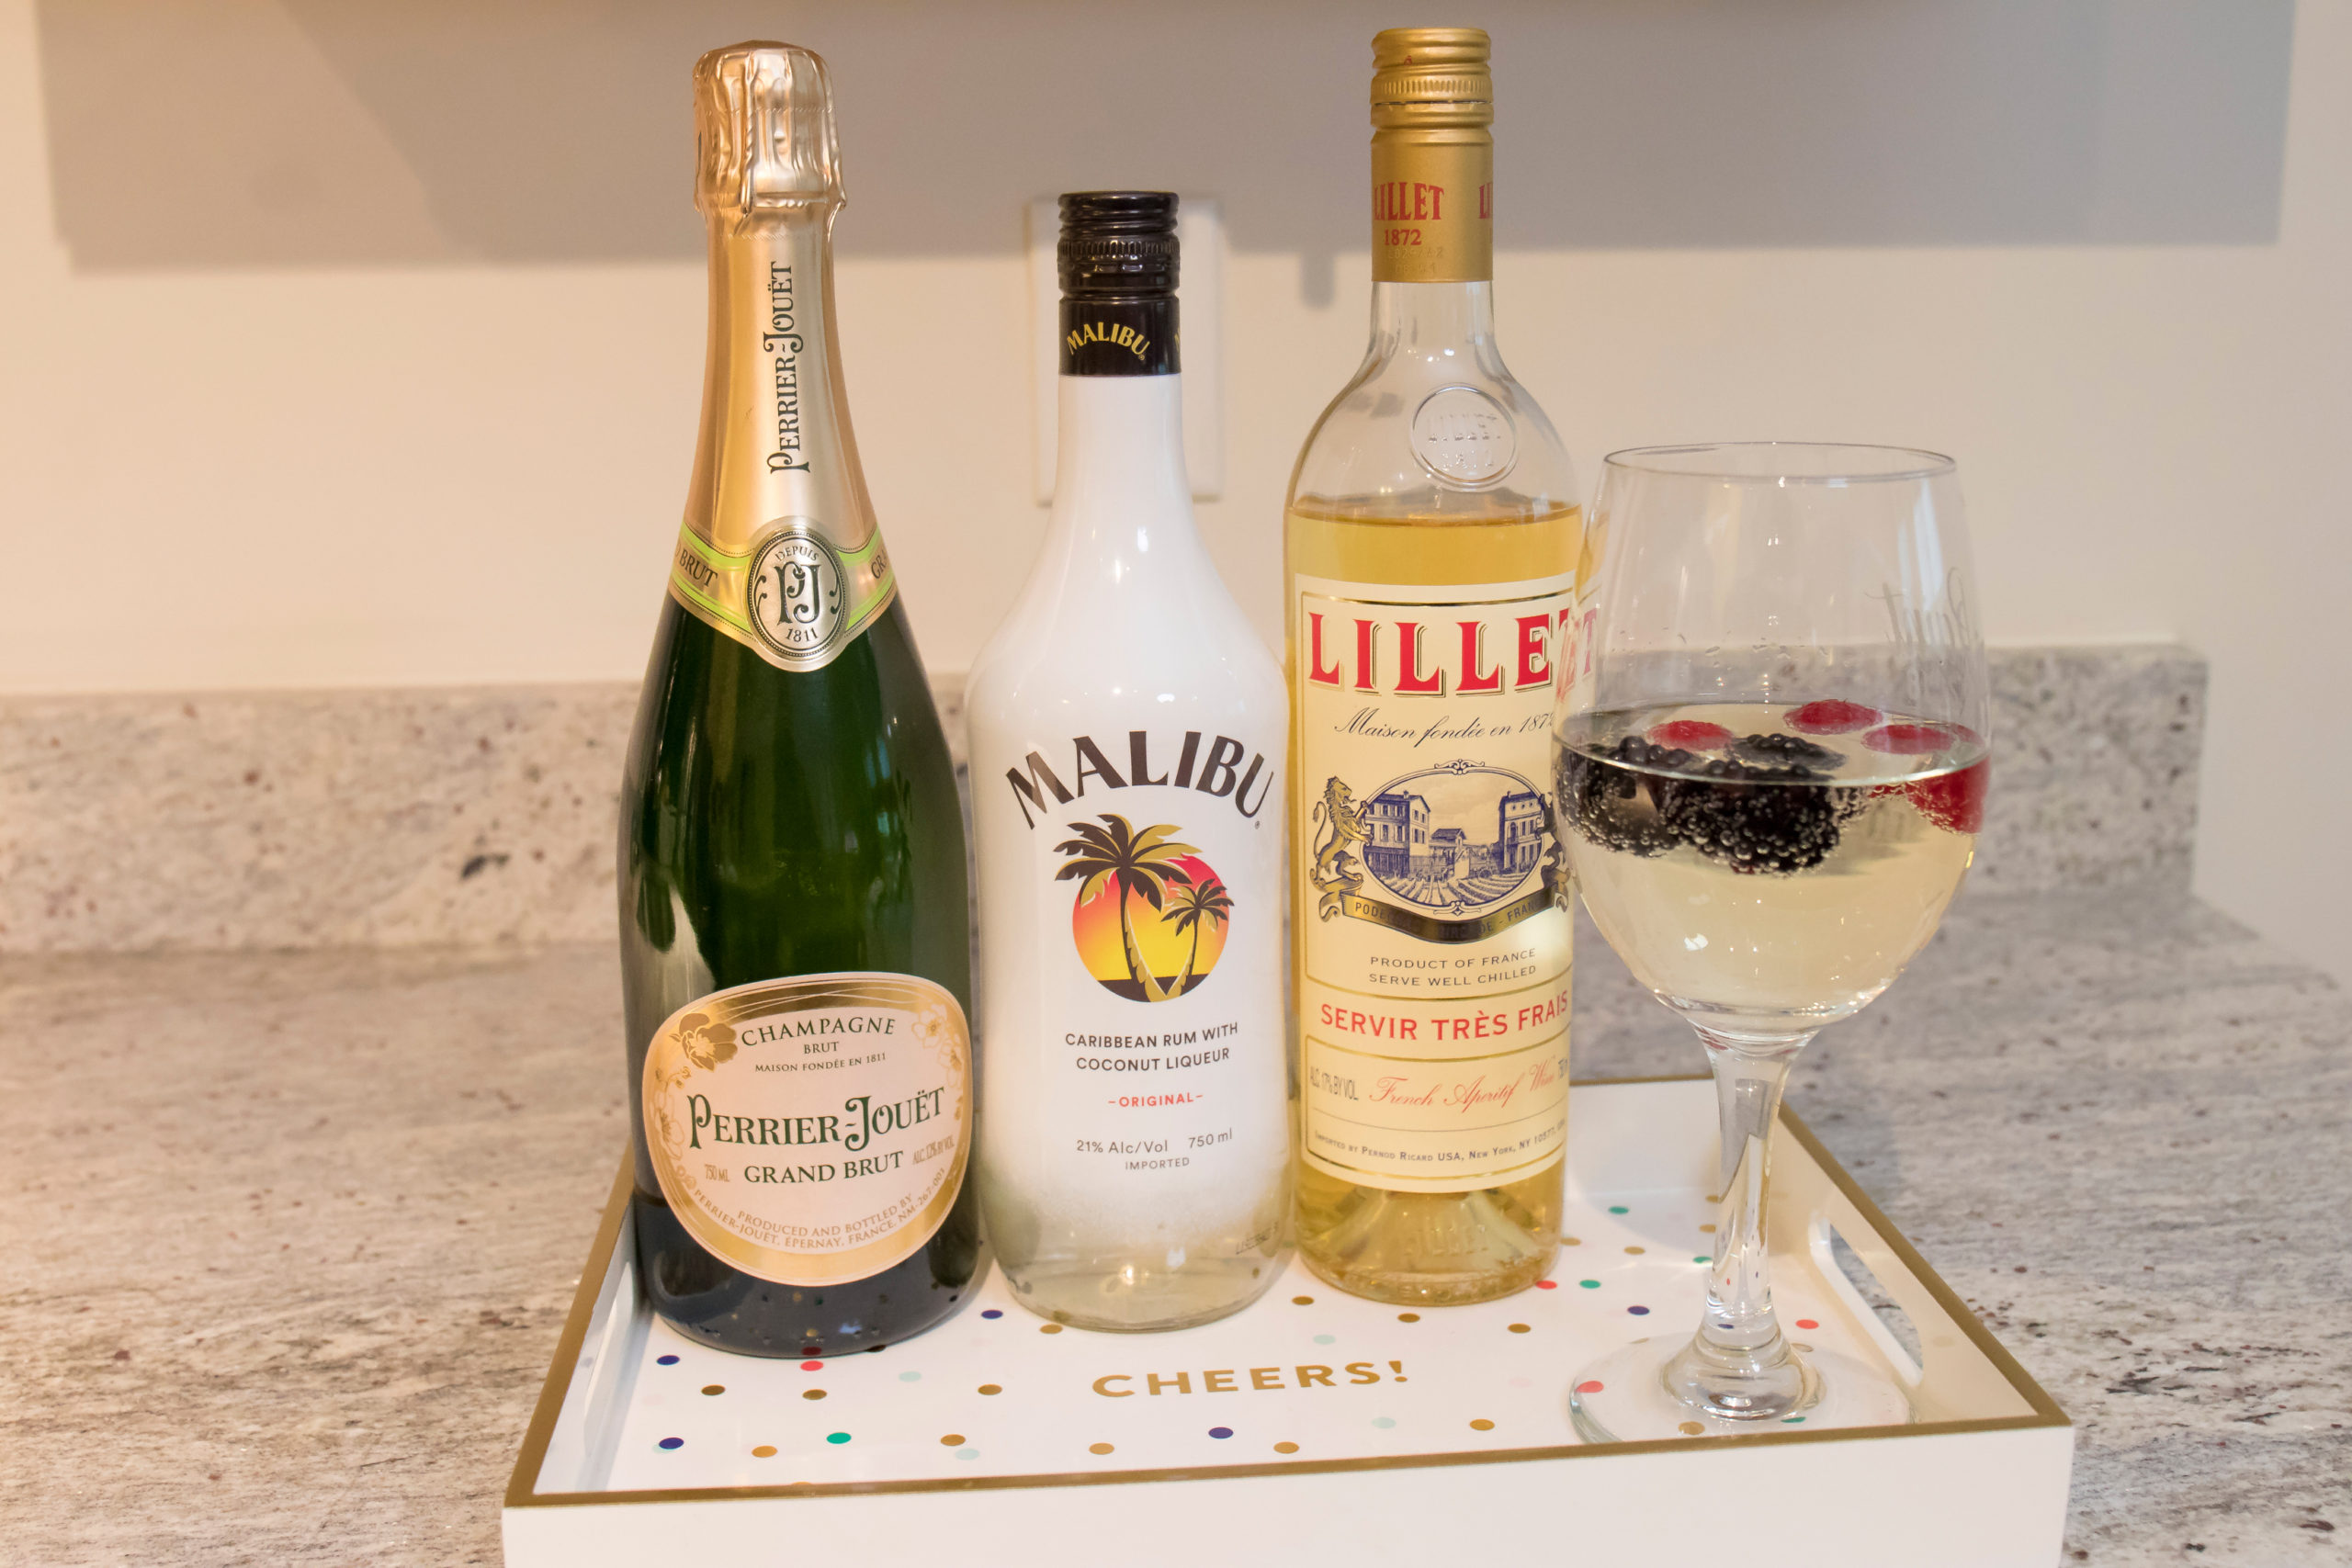 Drizly and What's Haute, holiday drink ideas, Perrier Jouet, Malibum rum, Lillet wine